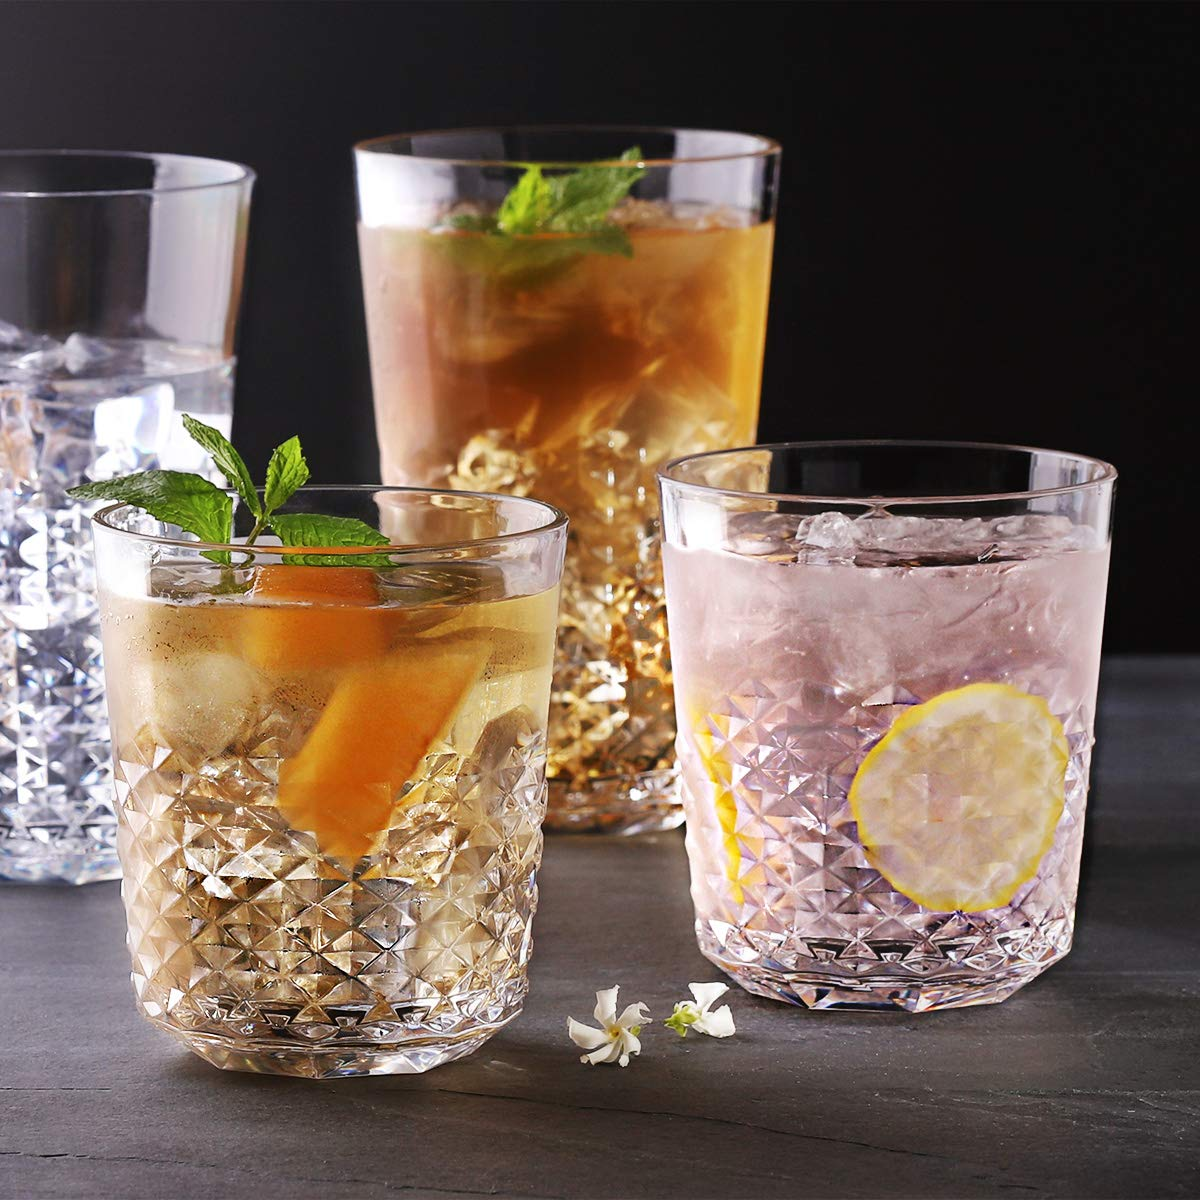 Cupture Diamond Plastic Tumblers BPA Free, 24 oz / 14 oz, 8-Pack (Clear) by Cupture (Image #8)